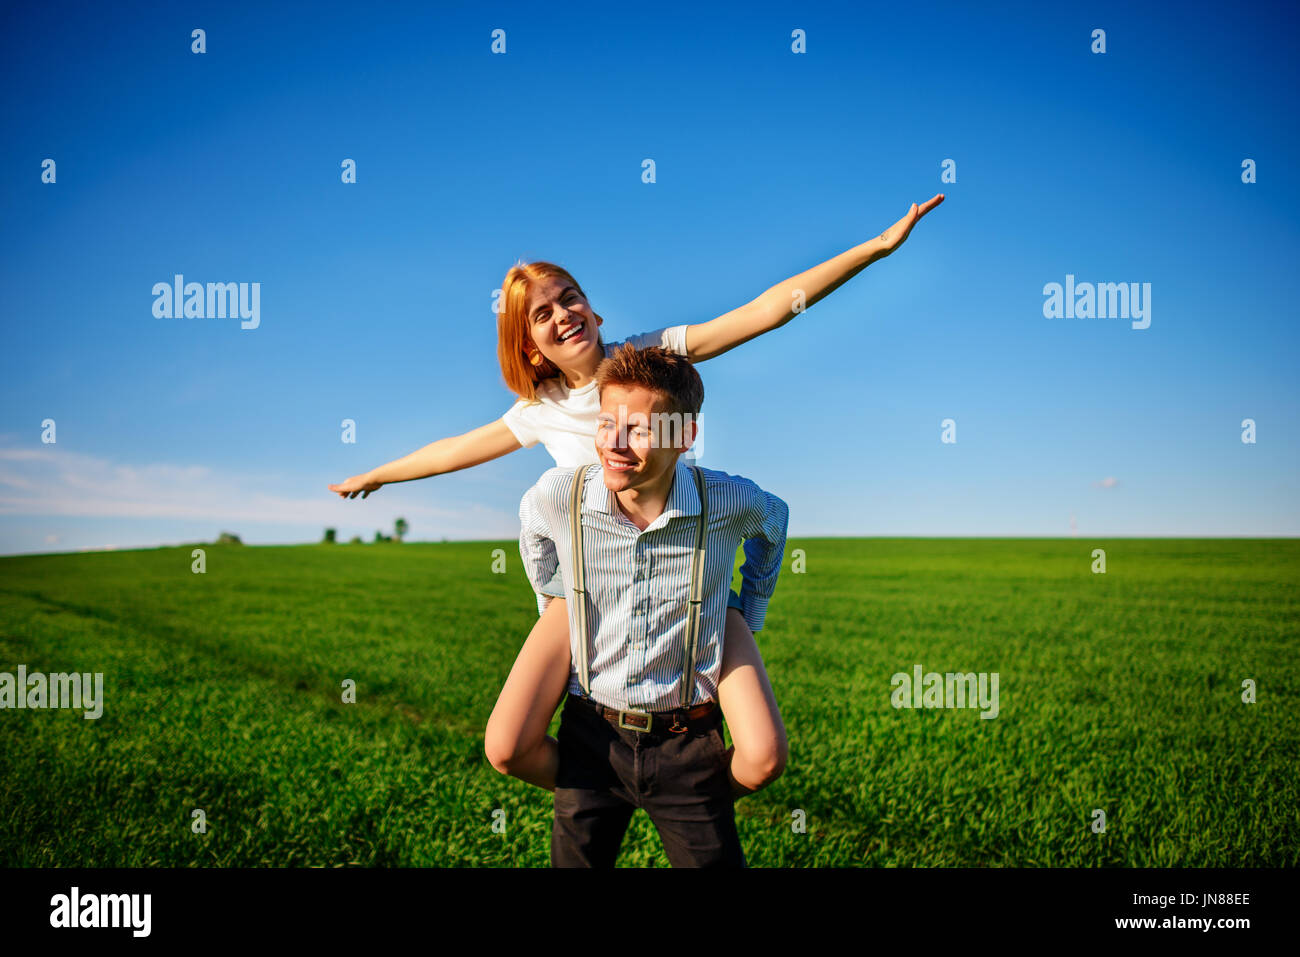 Smiling Man is holding on his back happy woman, who pulls out her arms and simulates a flight against the background of the blue sky and the green fie - Stock Image